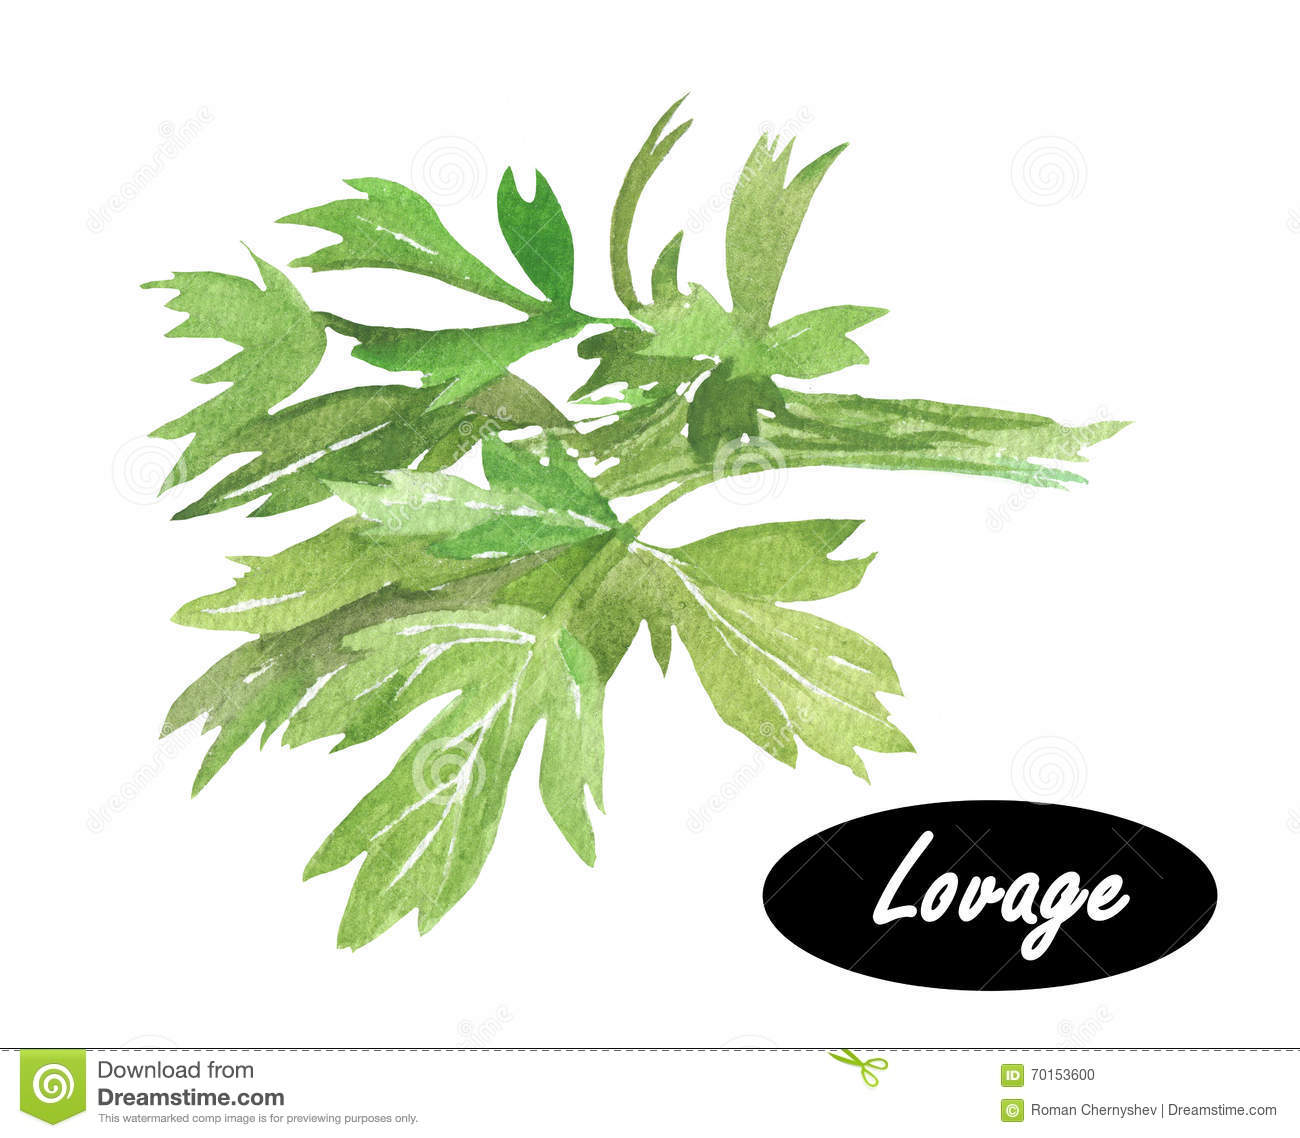 Watercolor Illustration Of Lovage. Levisticum Officinale. Stock.